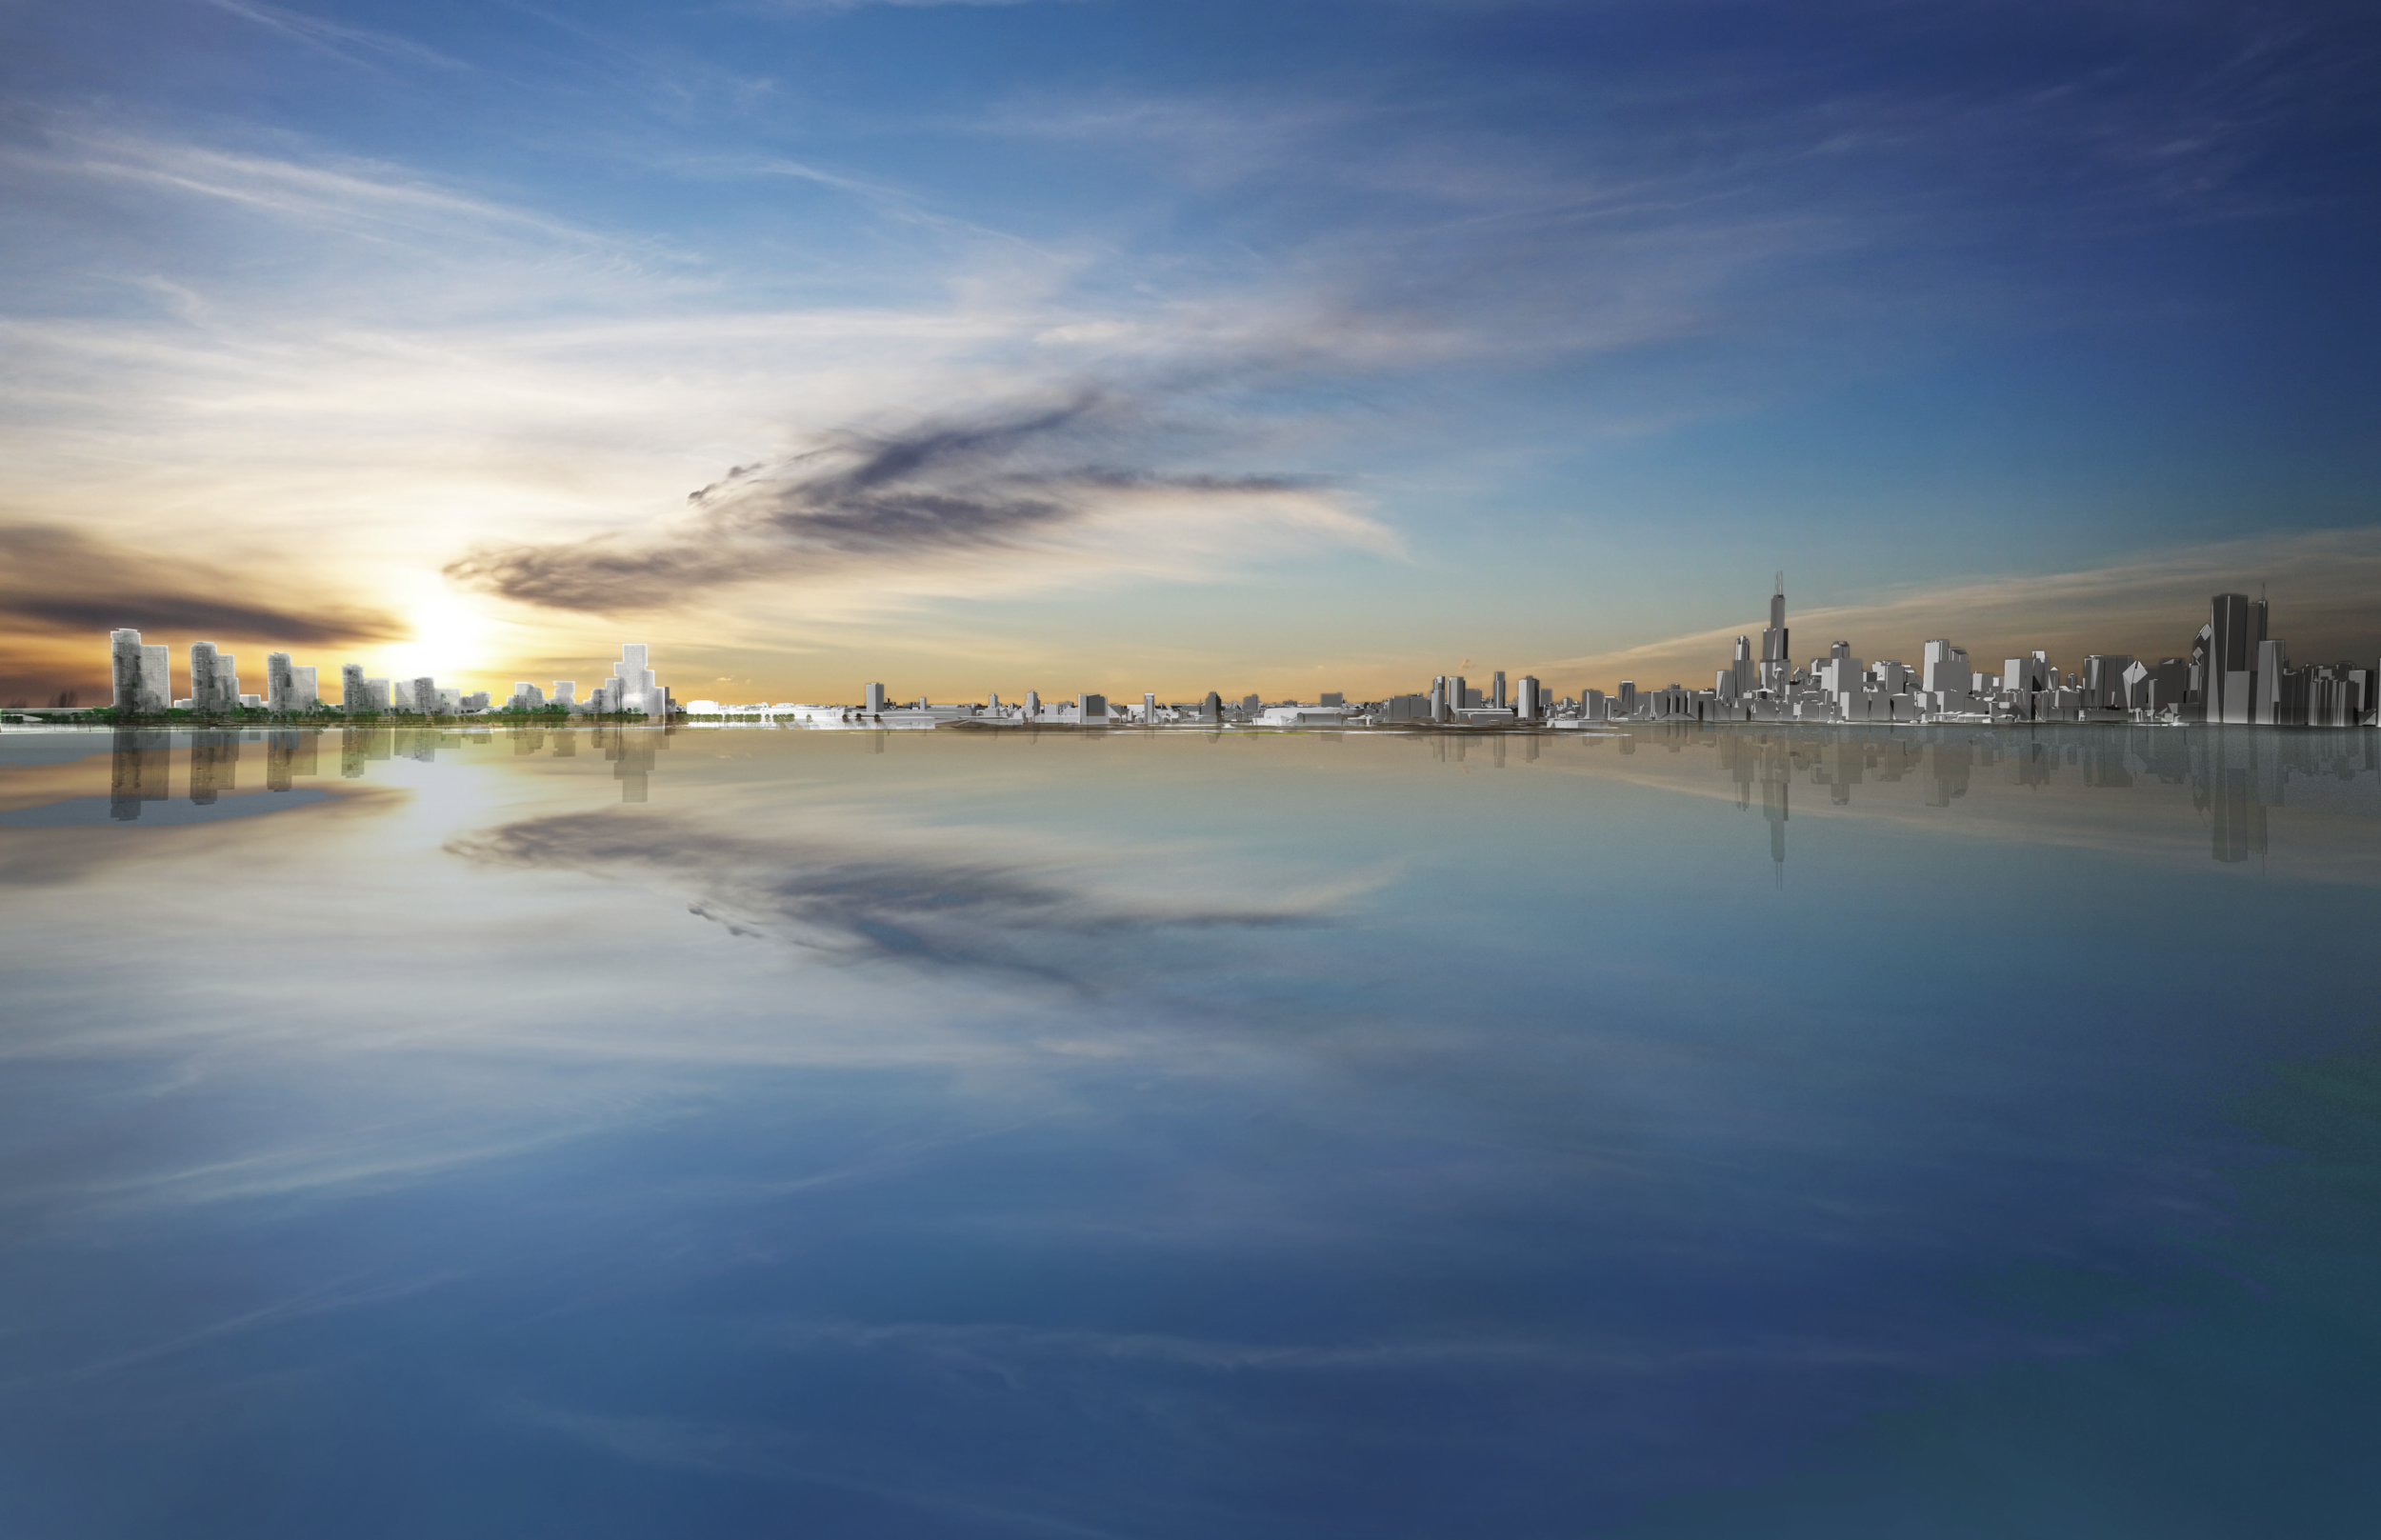 The Chicago skyline with the Imagine Project.